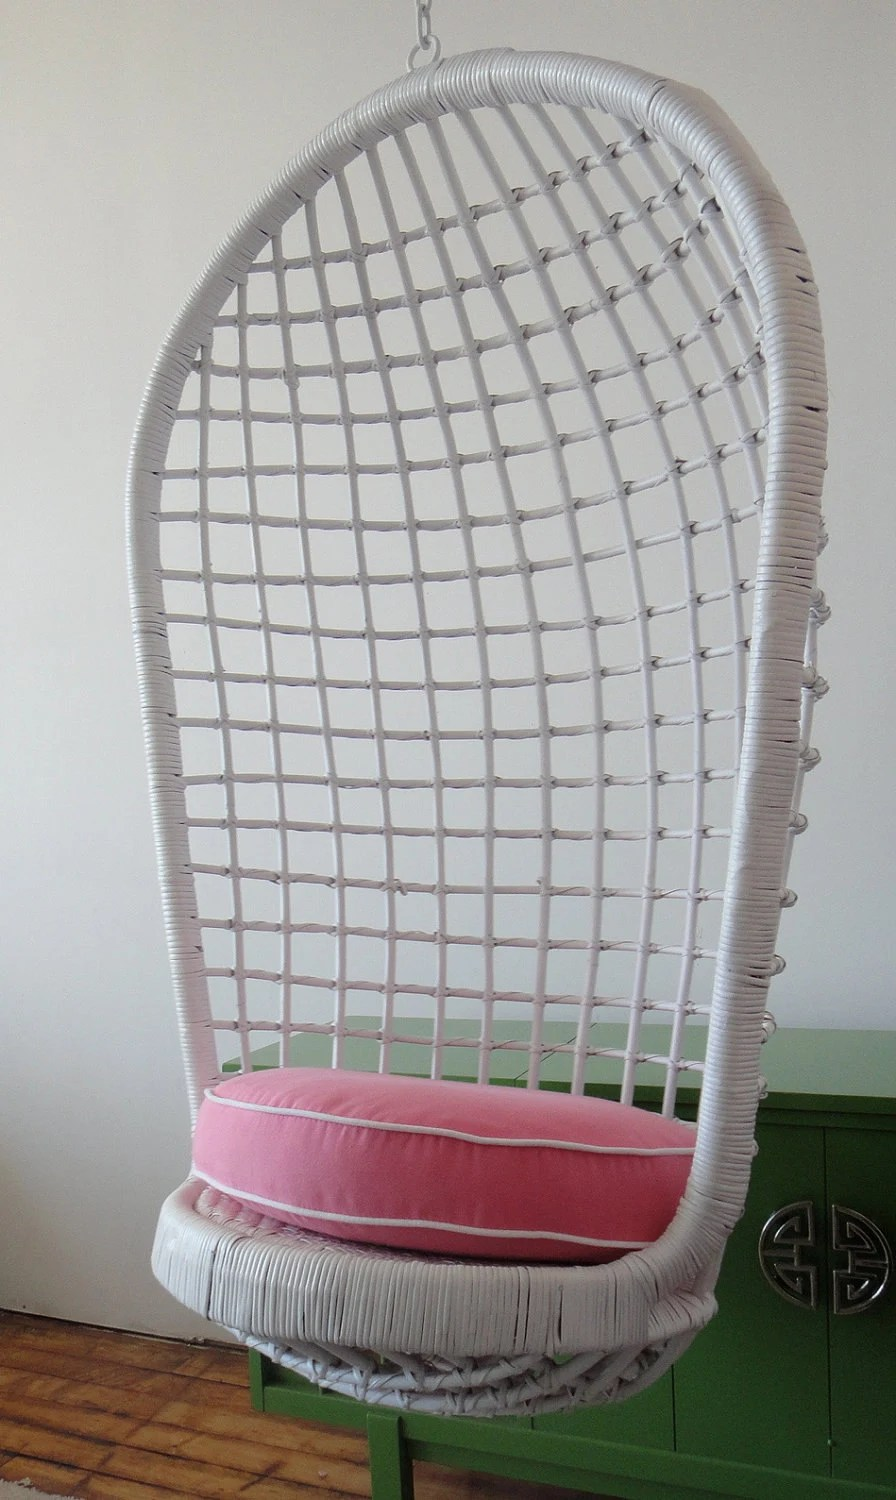 egg chair cushion covers and bows for sale hanging basket rattan wicker pink white